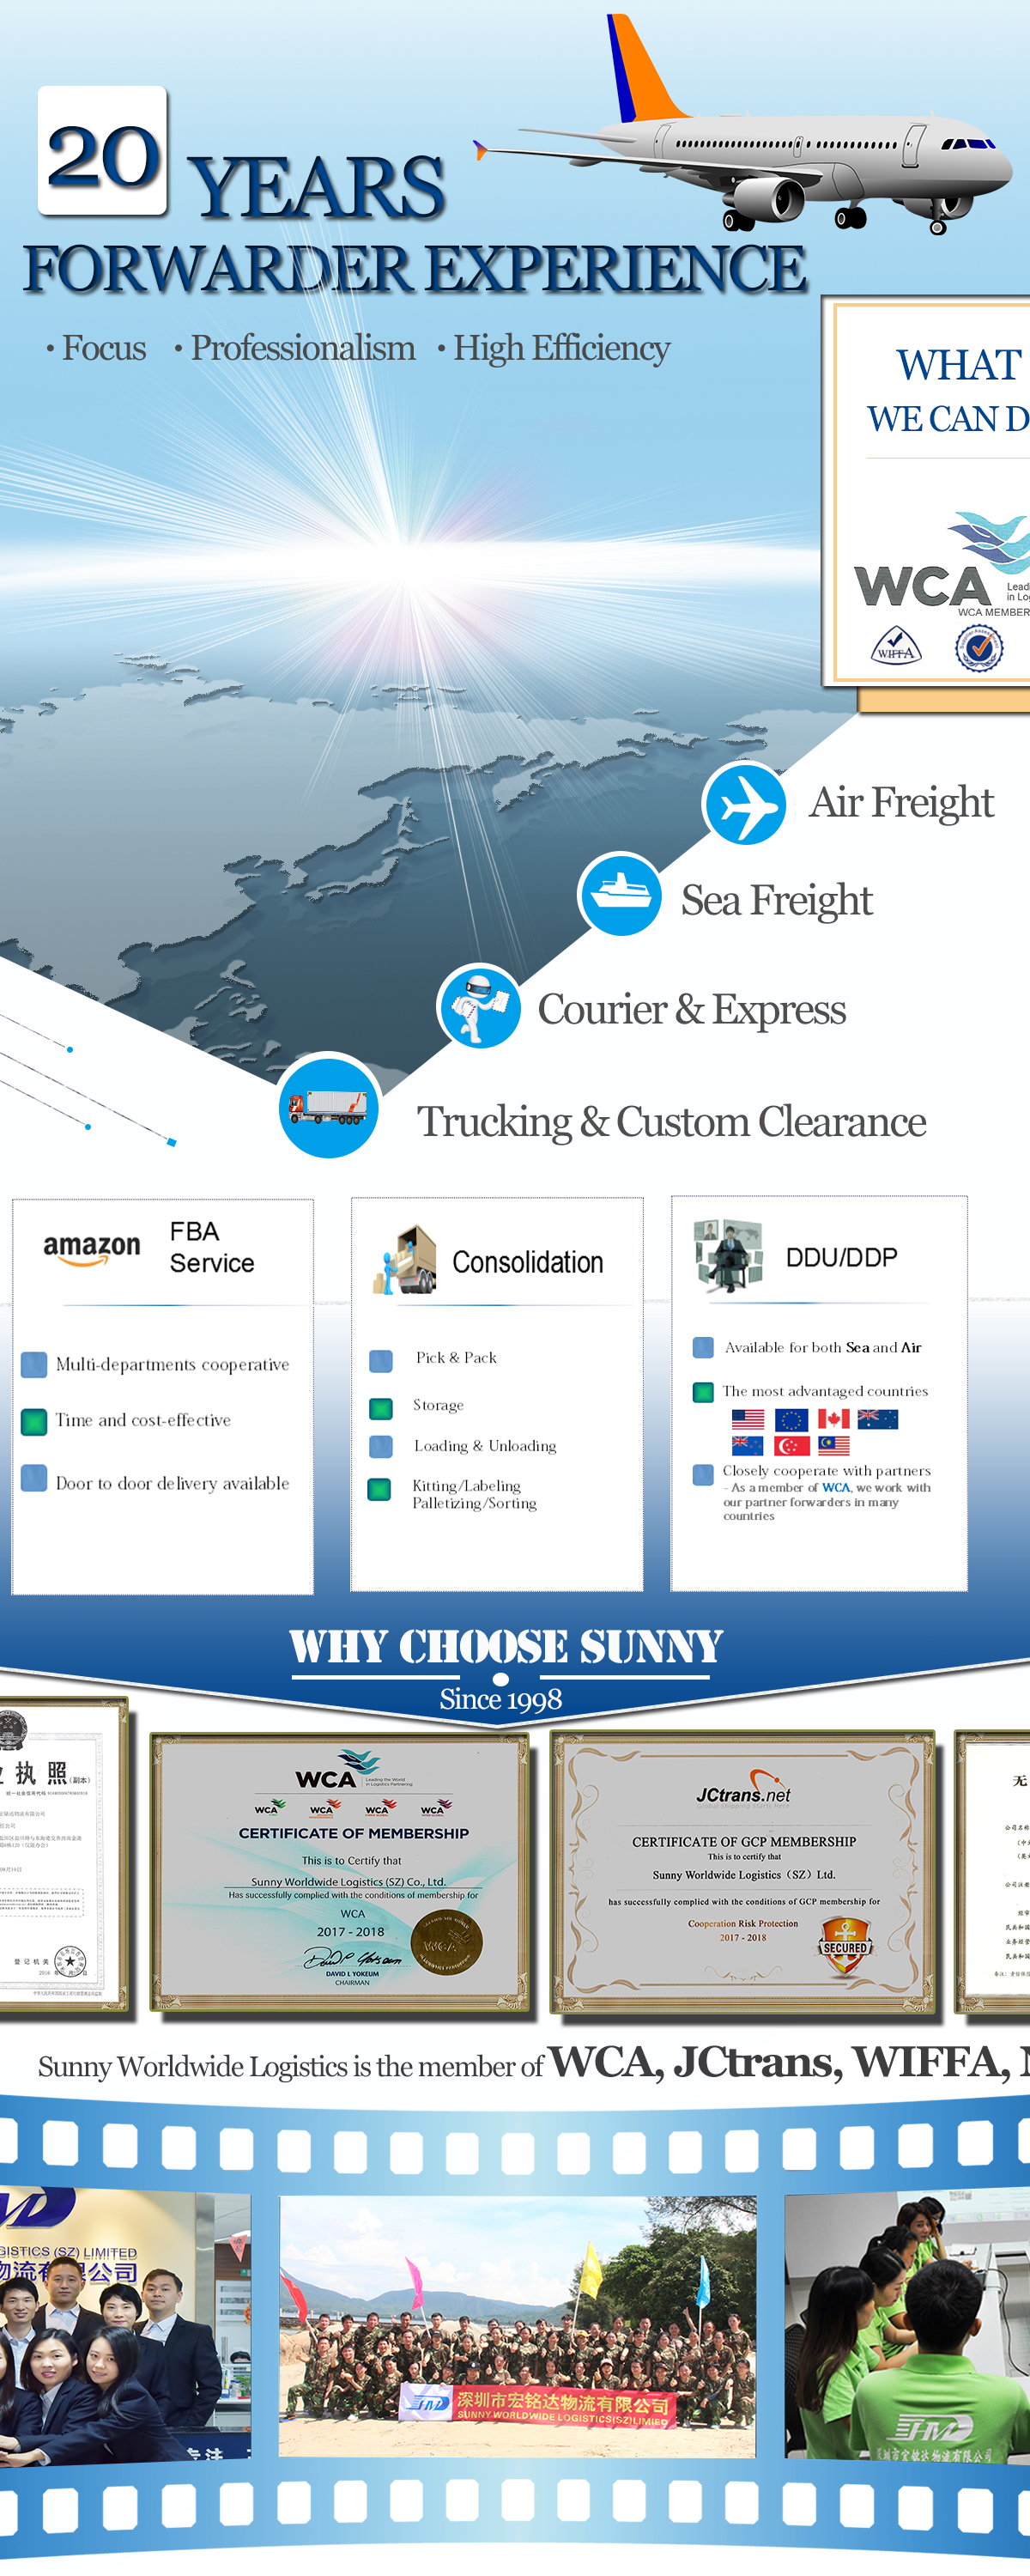 Sunny worldwide logistics forwarder